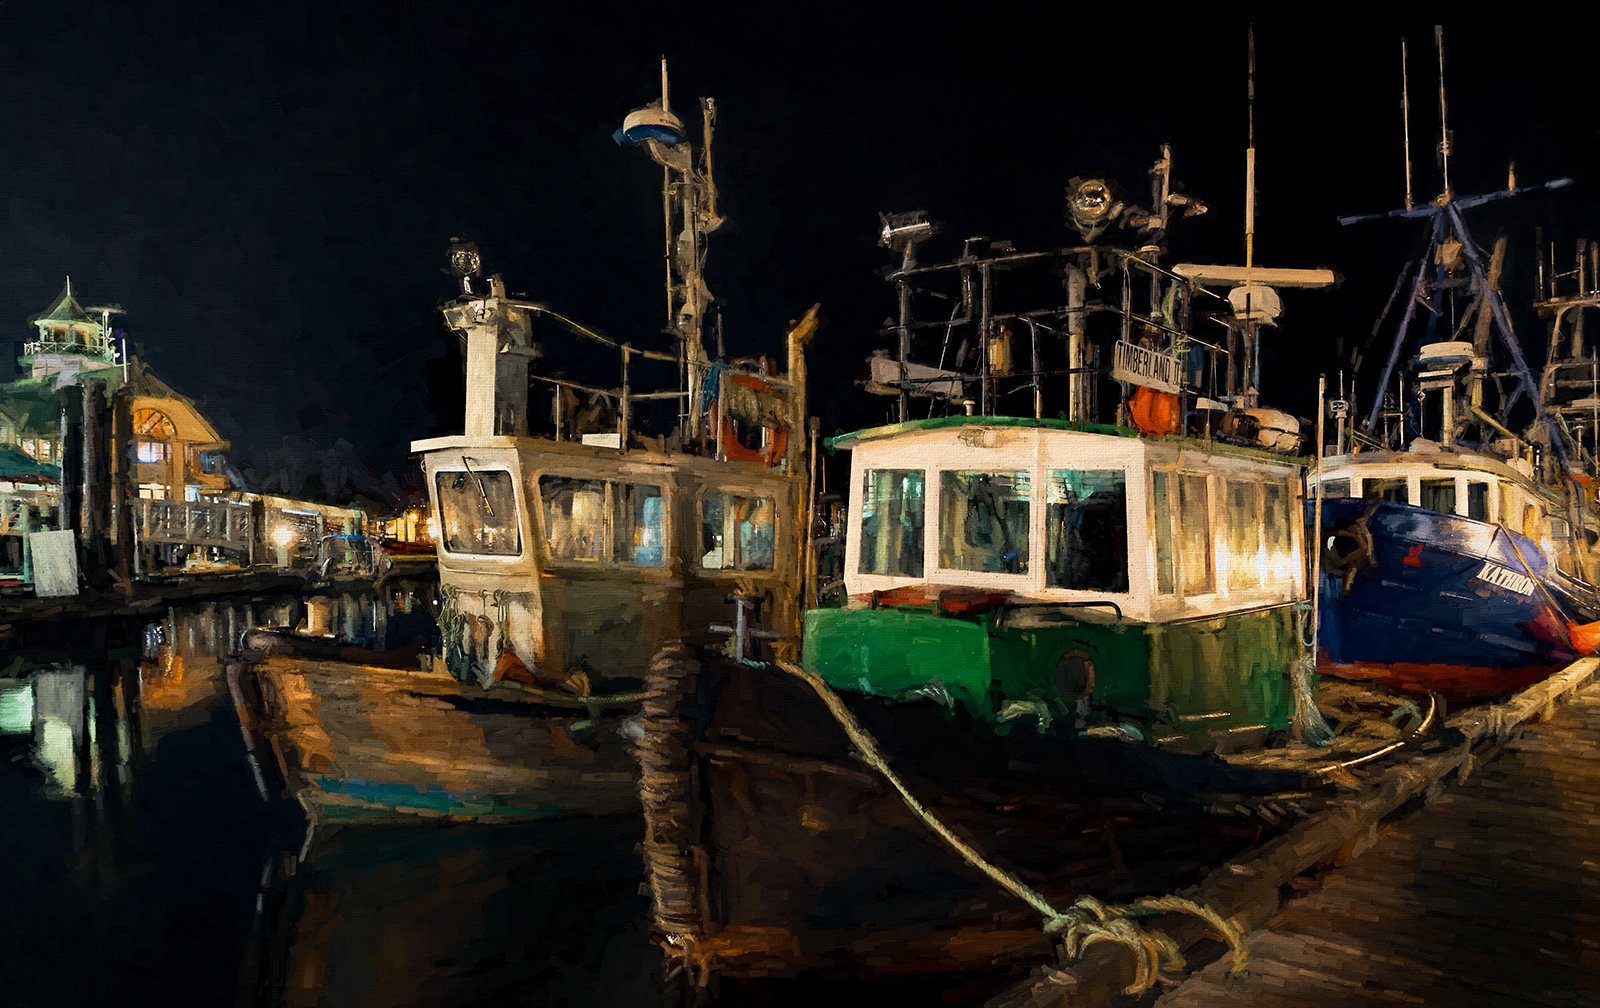 """Nanaimo Harbour at night as seen through a """"Degas Dancers"""" filter in Topaz Impressions"""